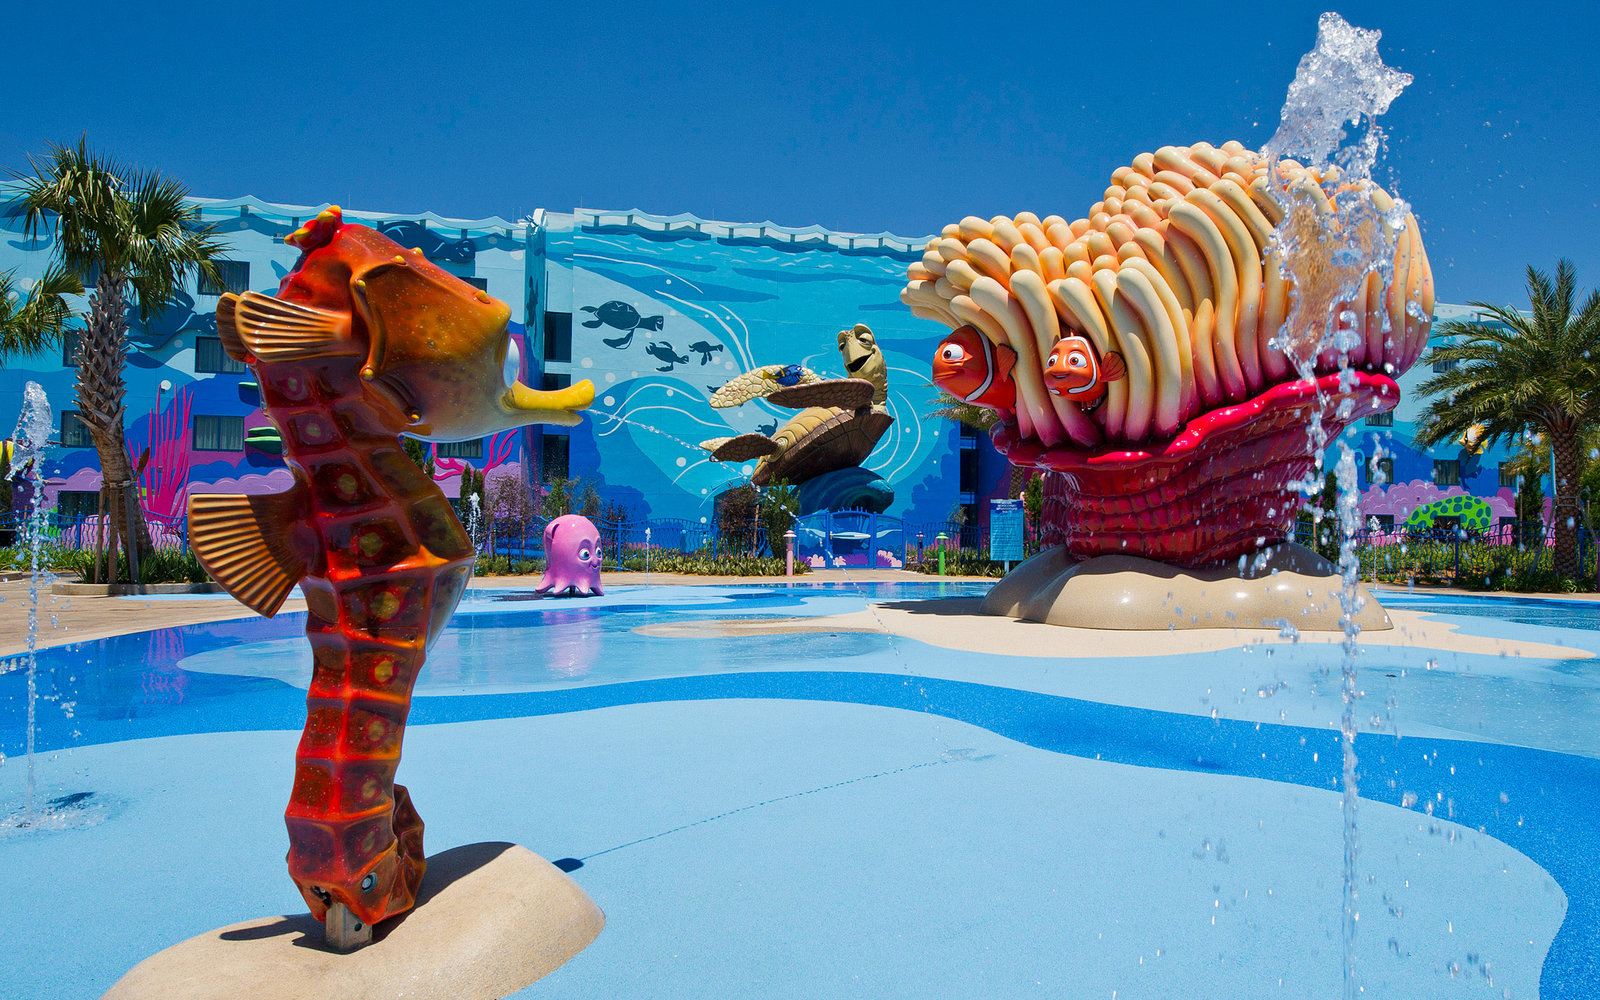 Disney Art of Animation Resort Finding Nemo